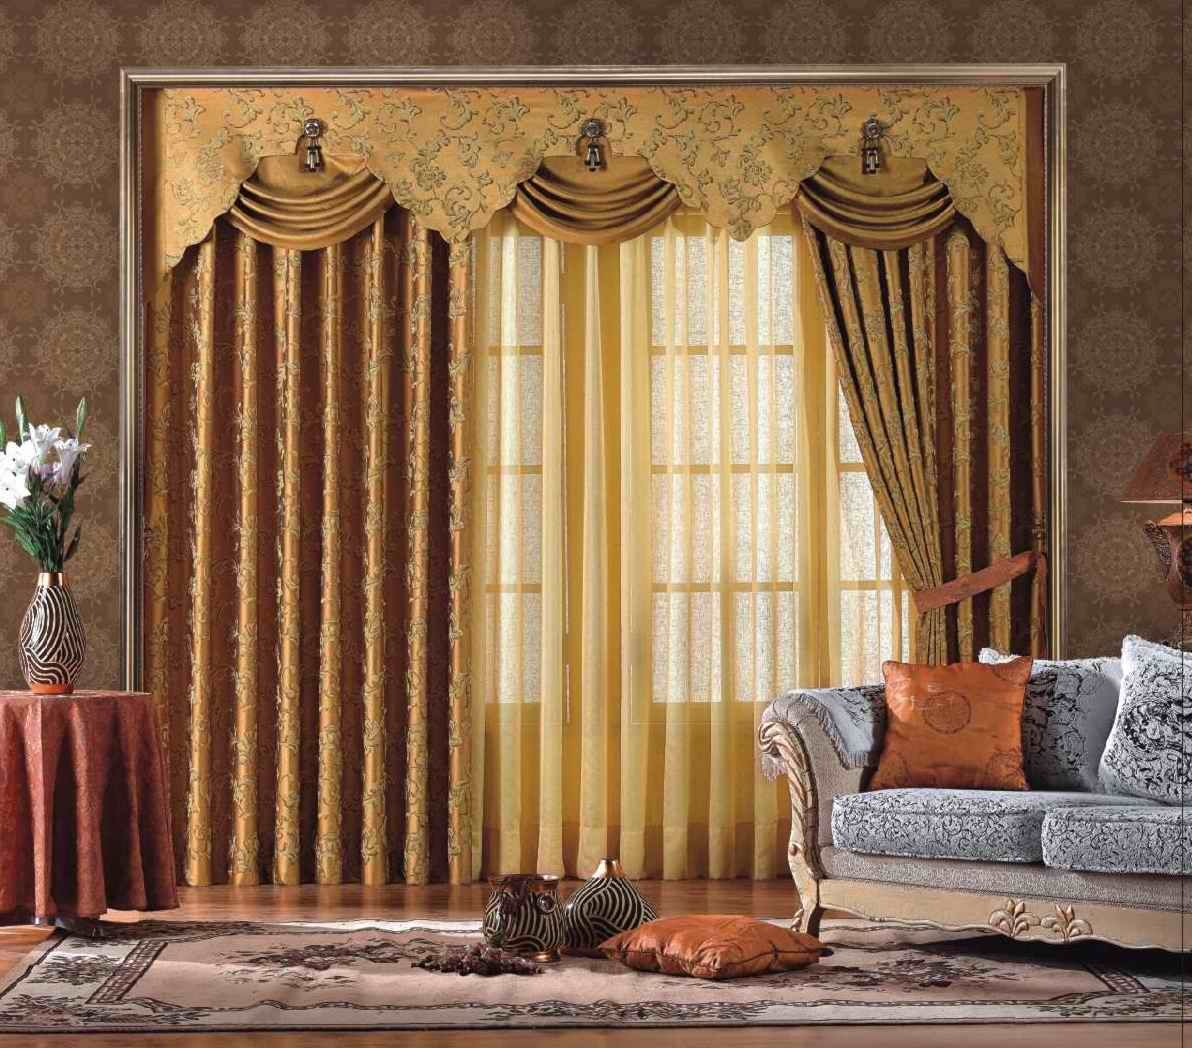 Living Room Curtain Design Adorable Architecture  Living Room Curtains With Valance Sutntljr Gorgeous 2018